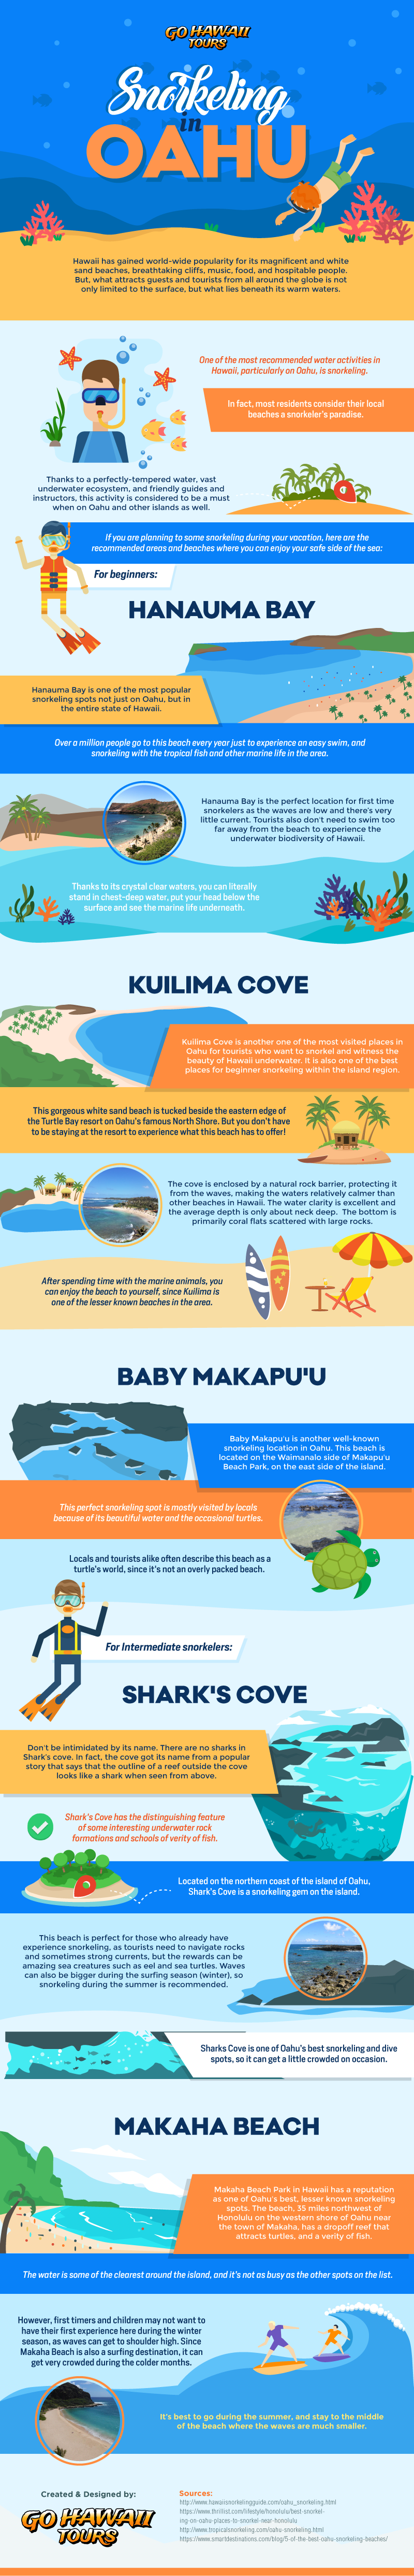 Snorkeling in Oahu #Infographic